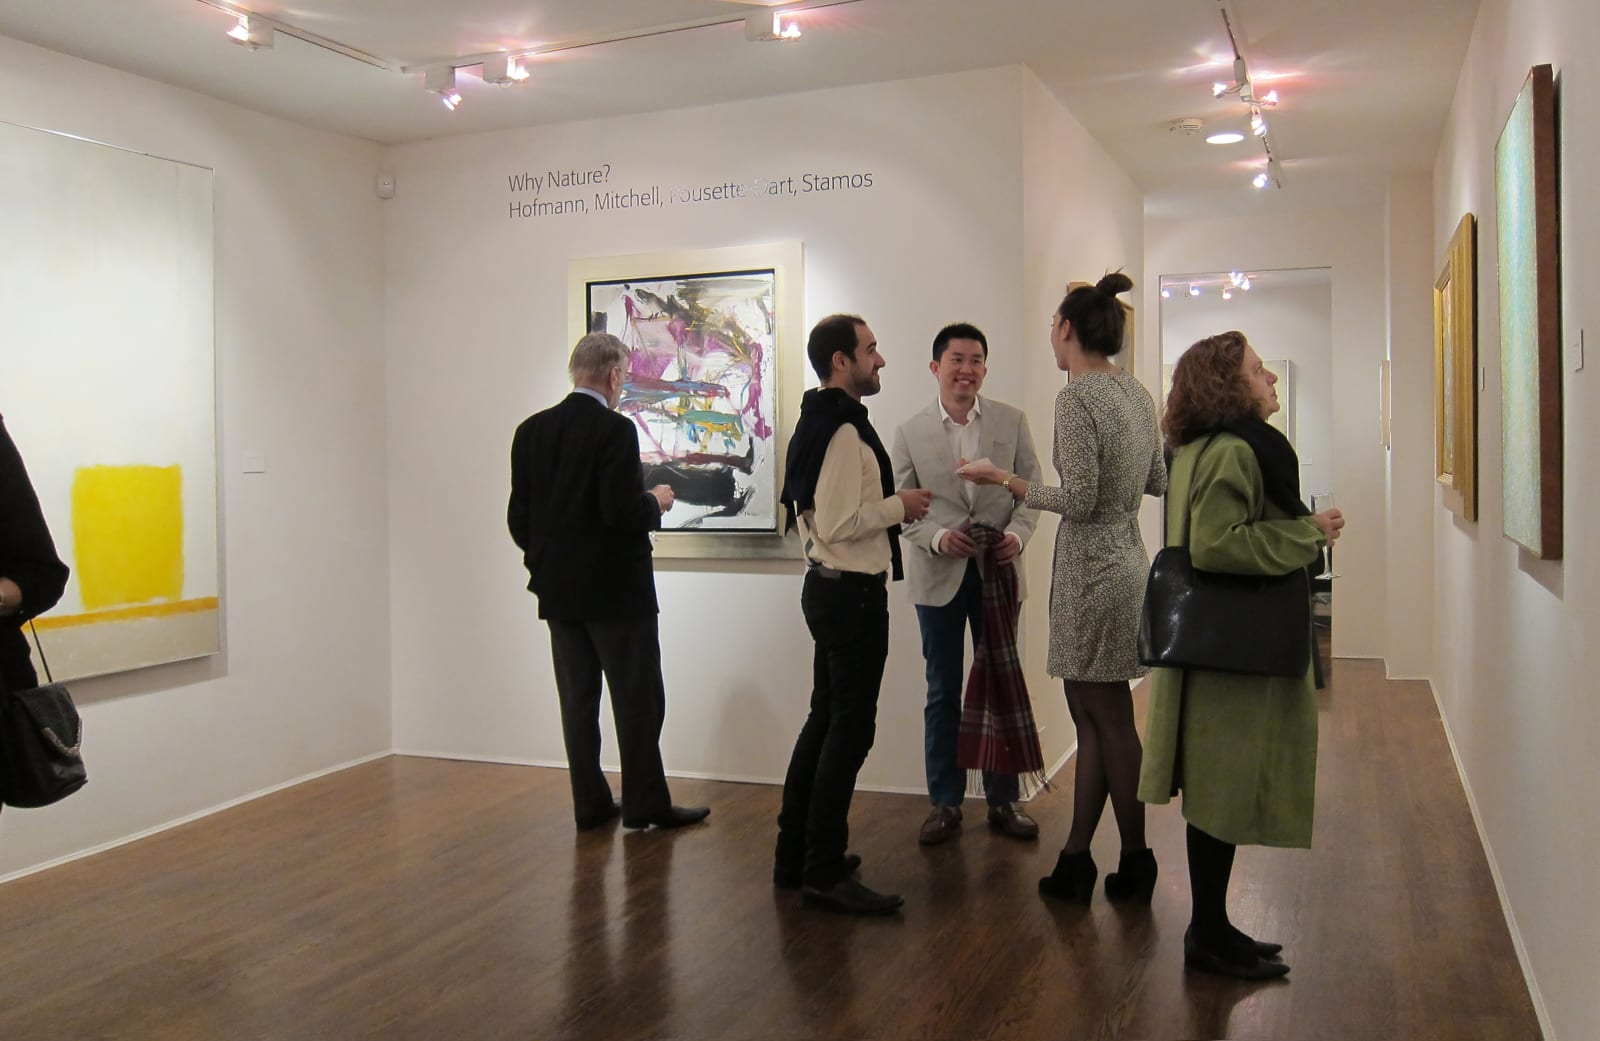 Opening reception: Why Nature? Hofmann, Mitchell, Pousette-Dart, Stamos